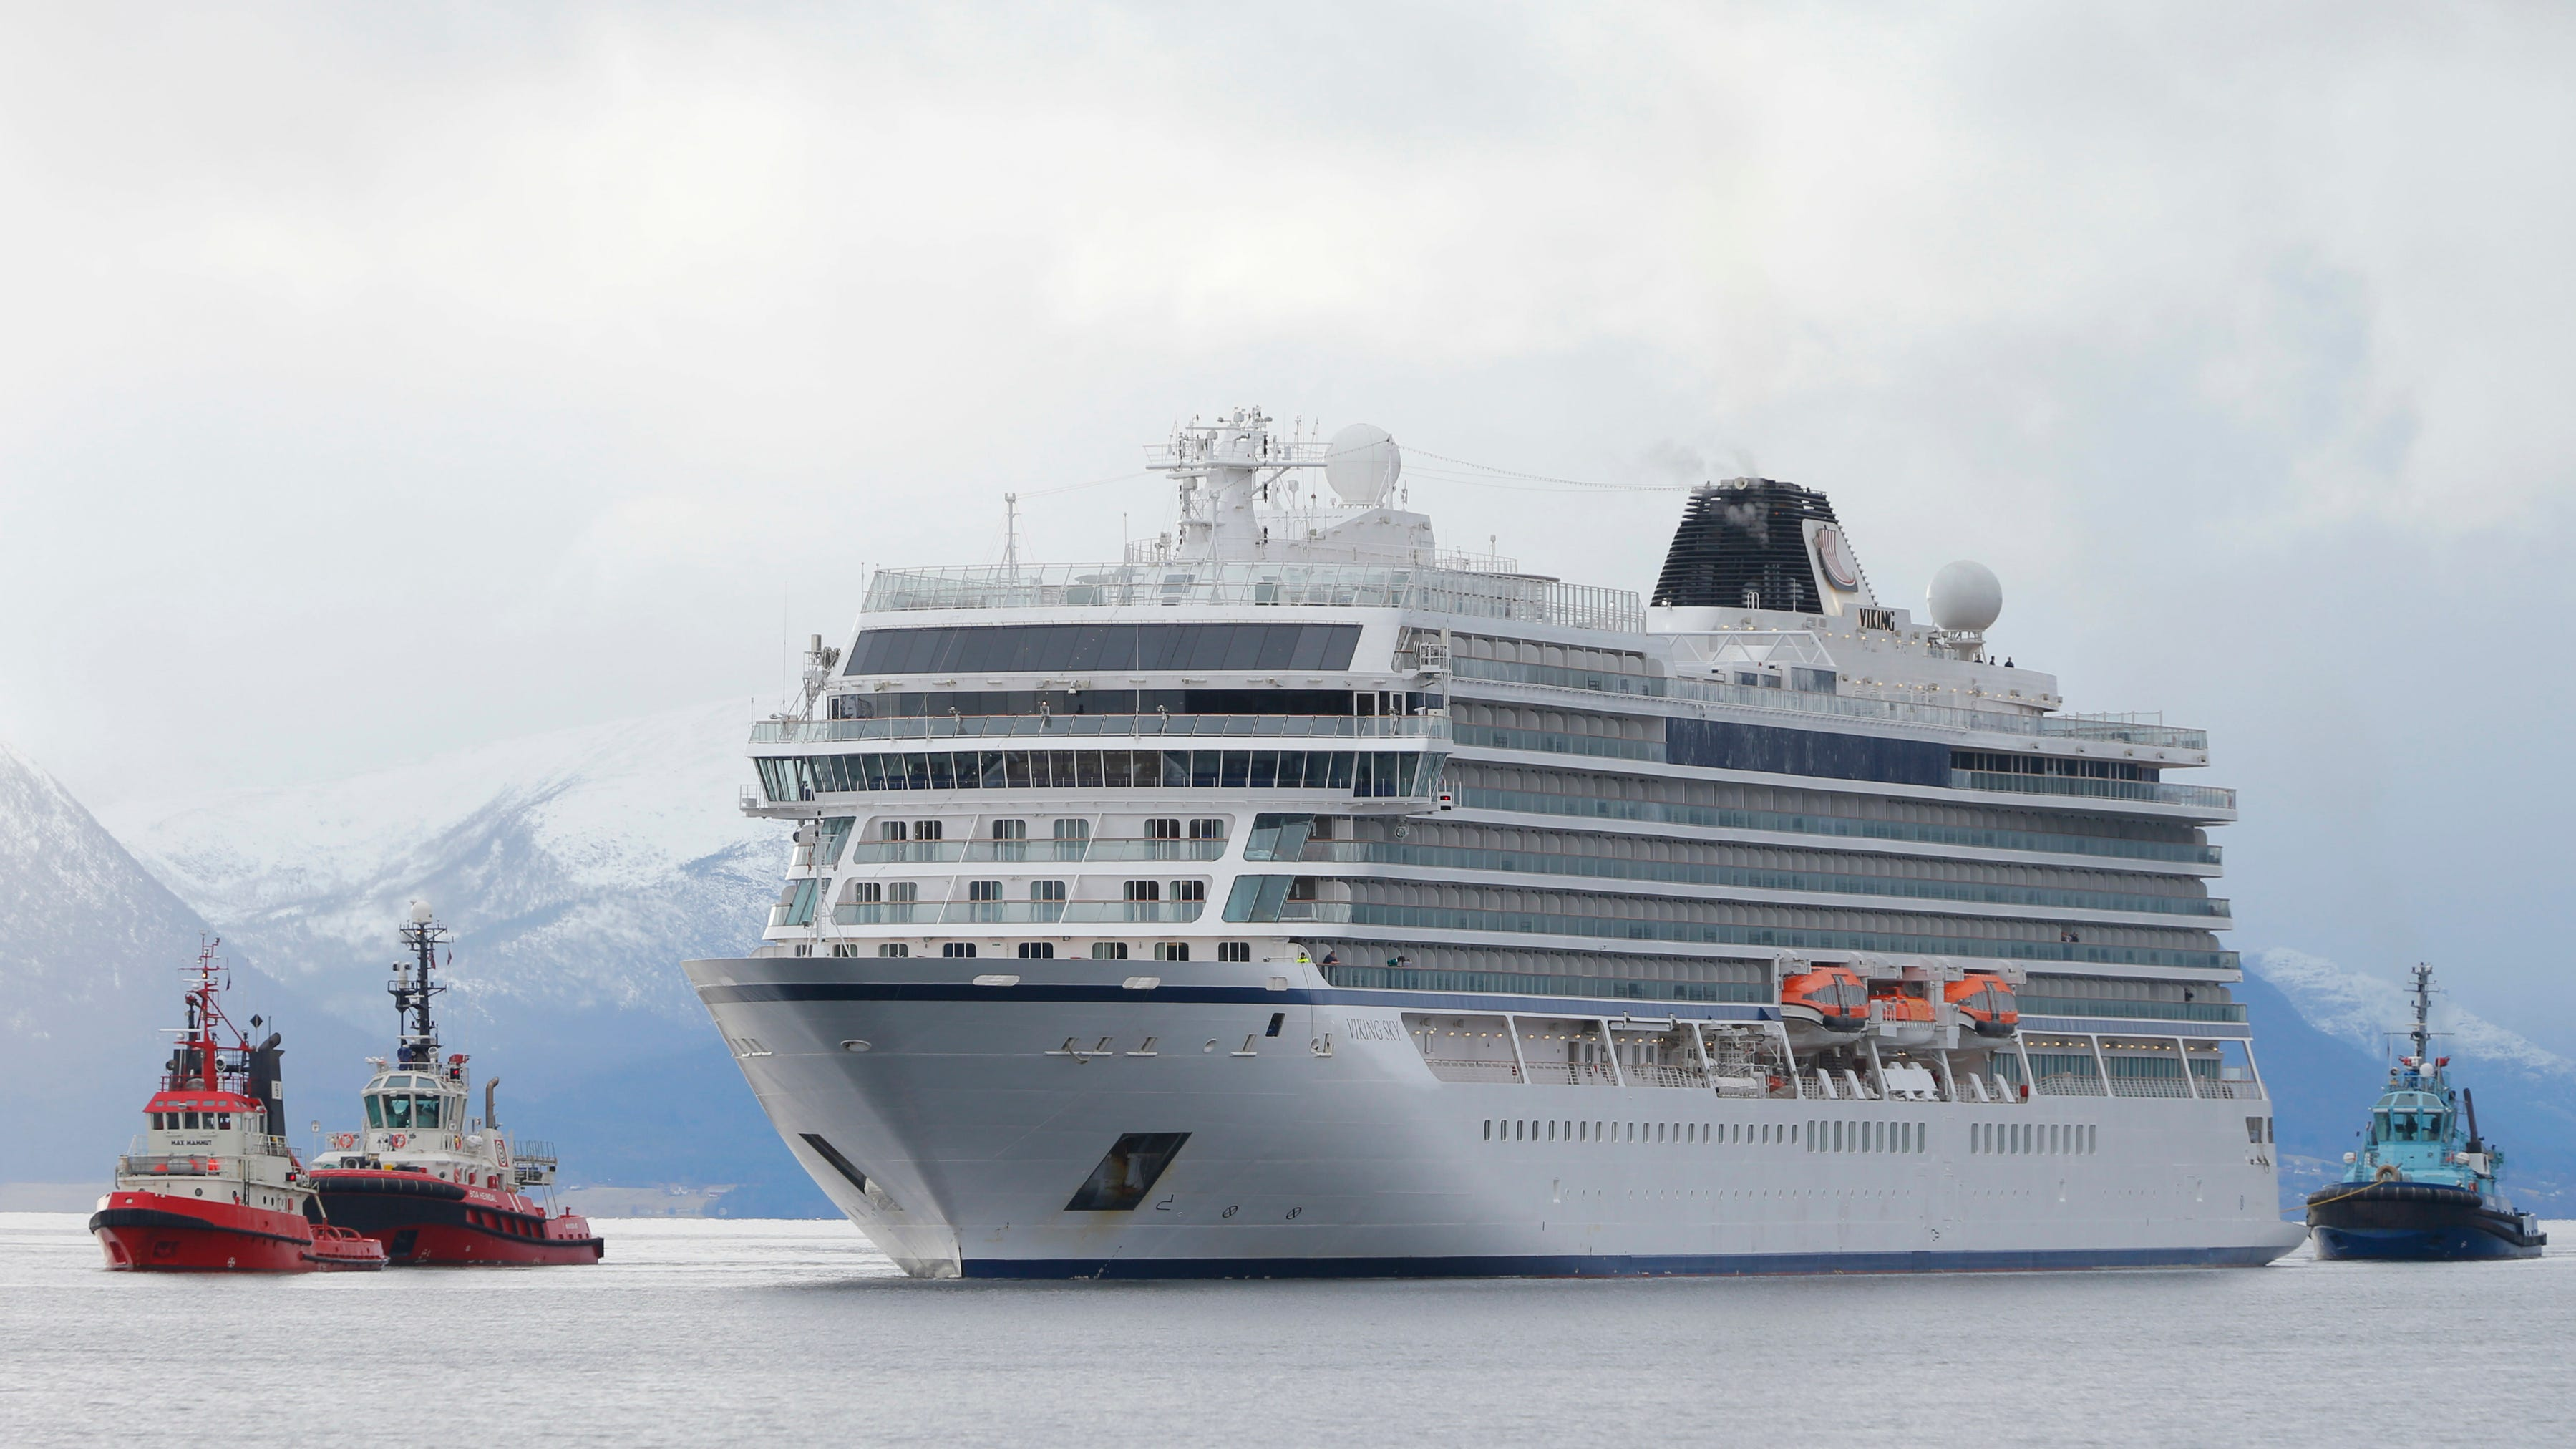 The cruise ship Viking Sky arrives at port off Molde, Norway, March 24, 2019, after engine problems in heavy seas off Norway's western coast.